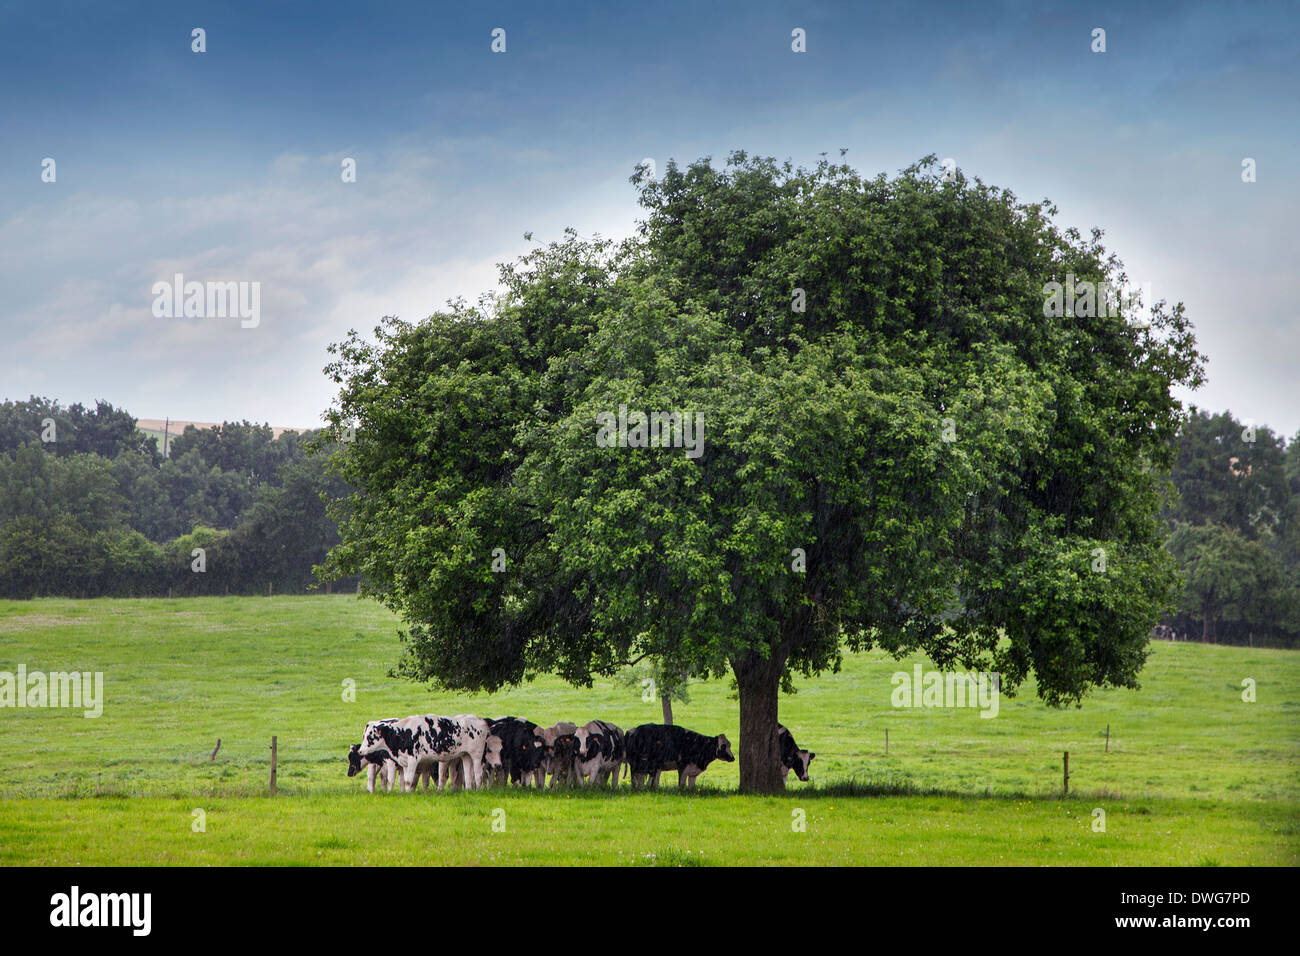 Cows looking for shelter under tree in field during downpour - Stock Image